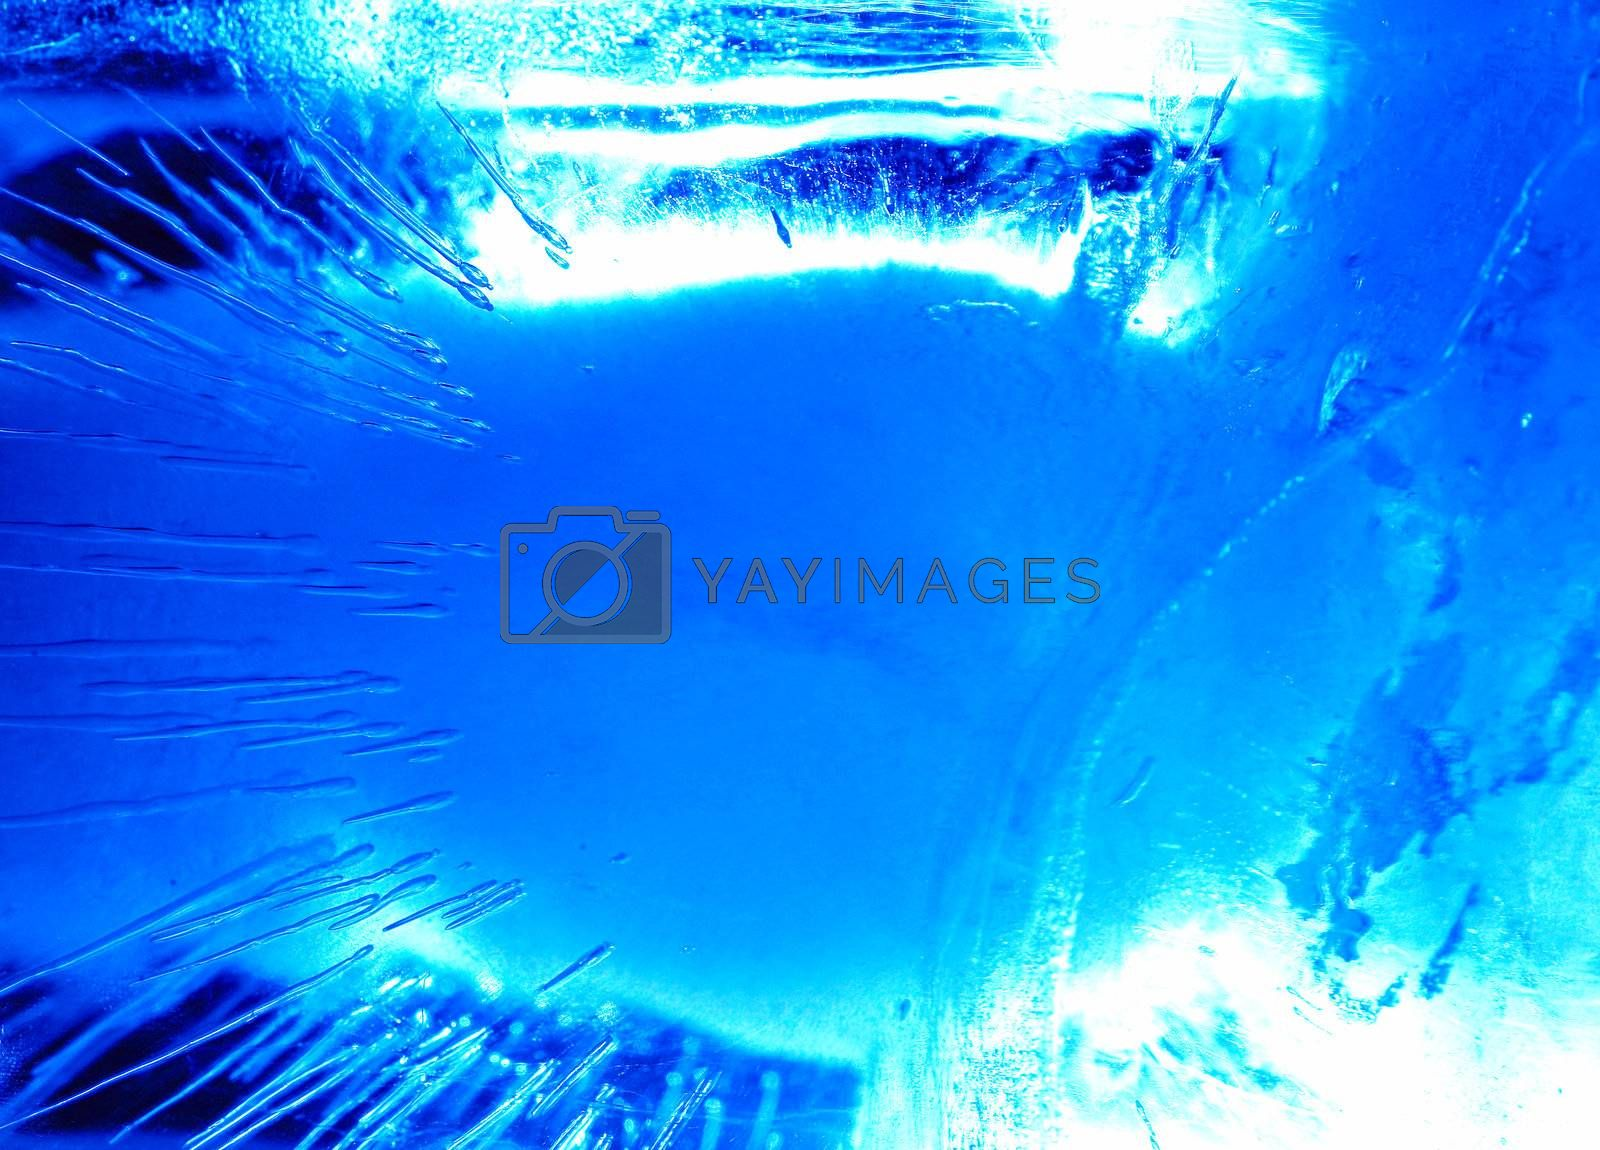 Abstract ice figure, in blue light, var2